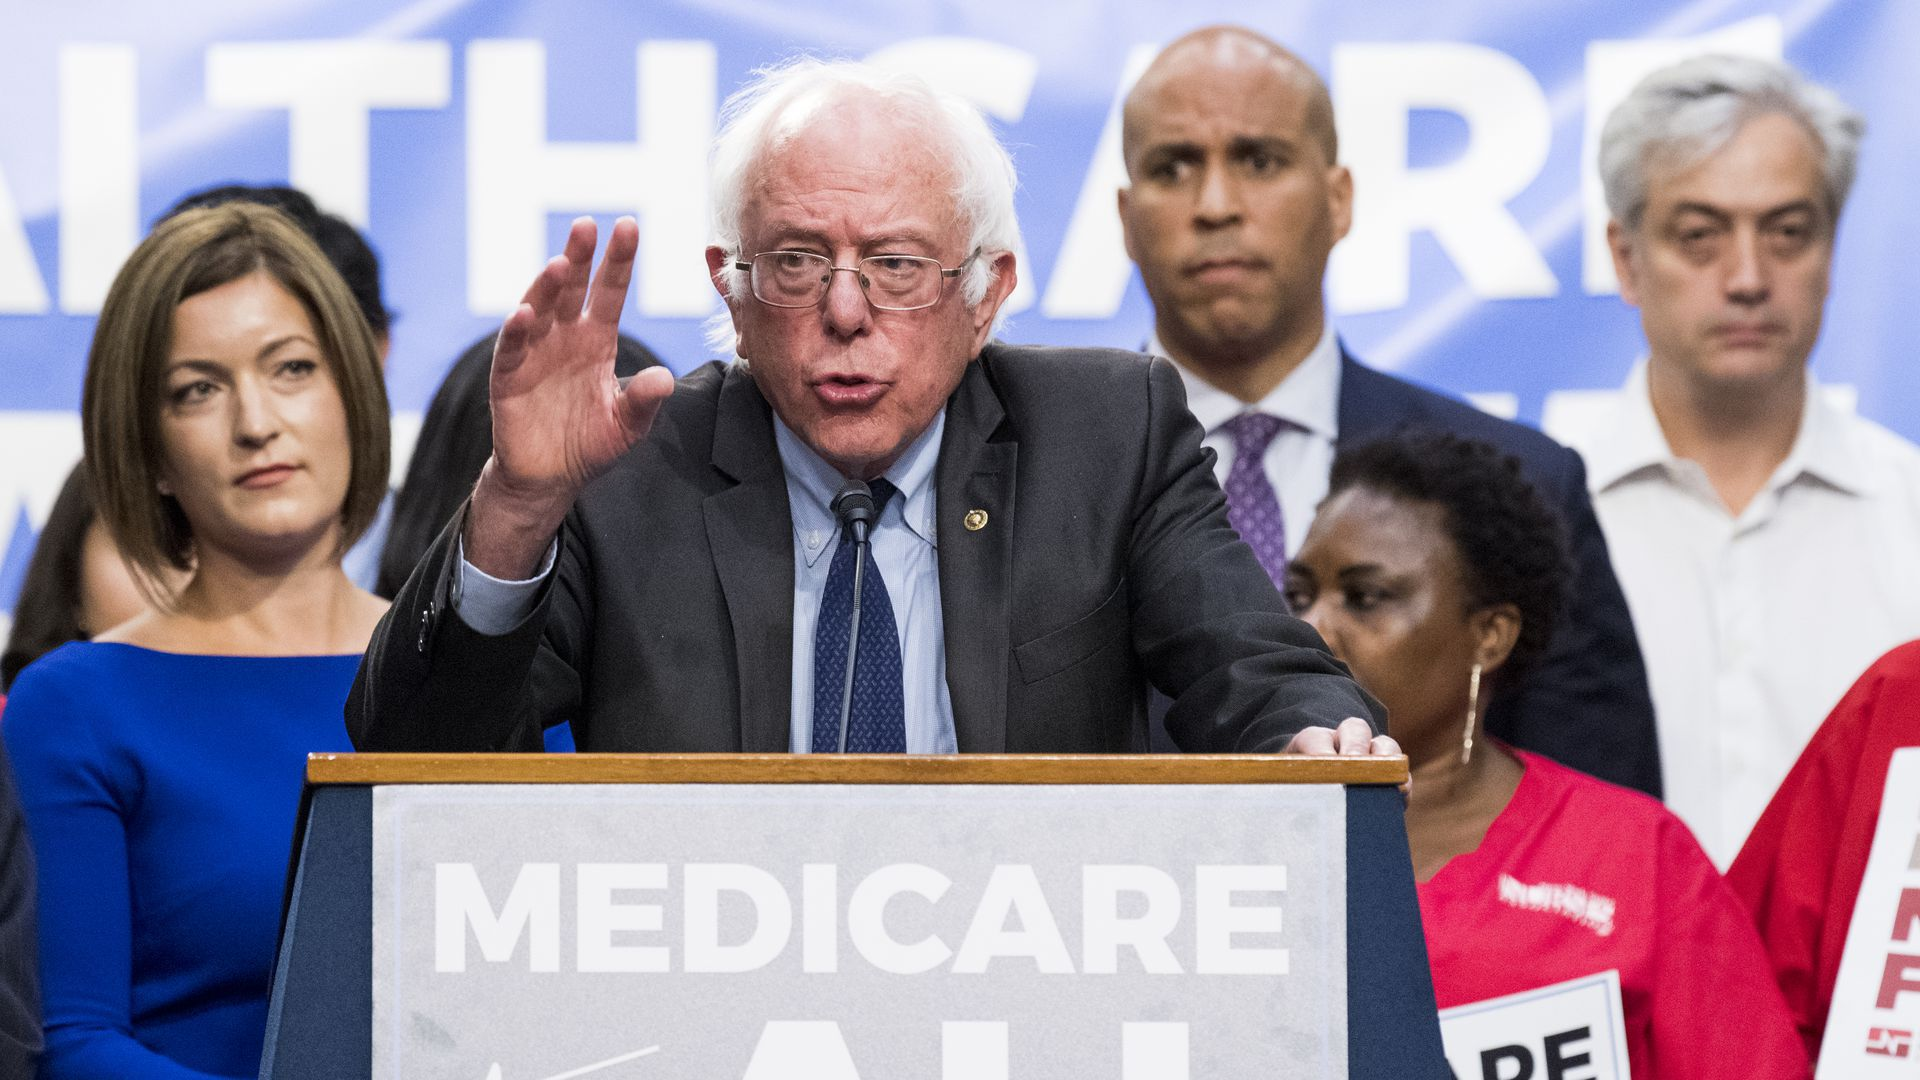 Bernie Sanders behind a Medicare for All lecturn